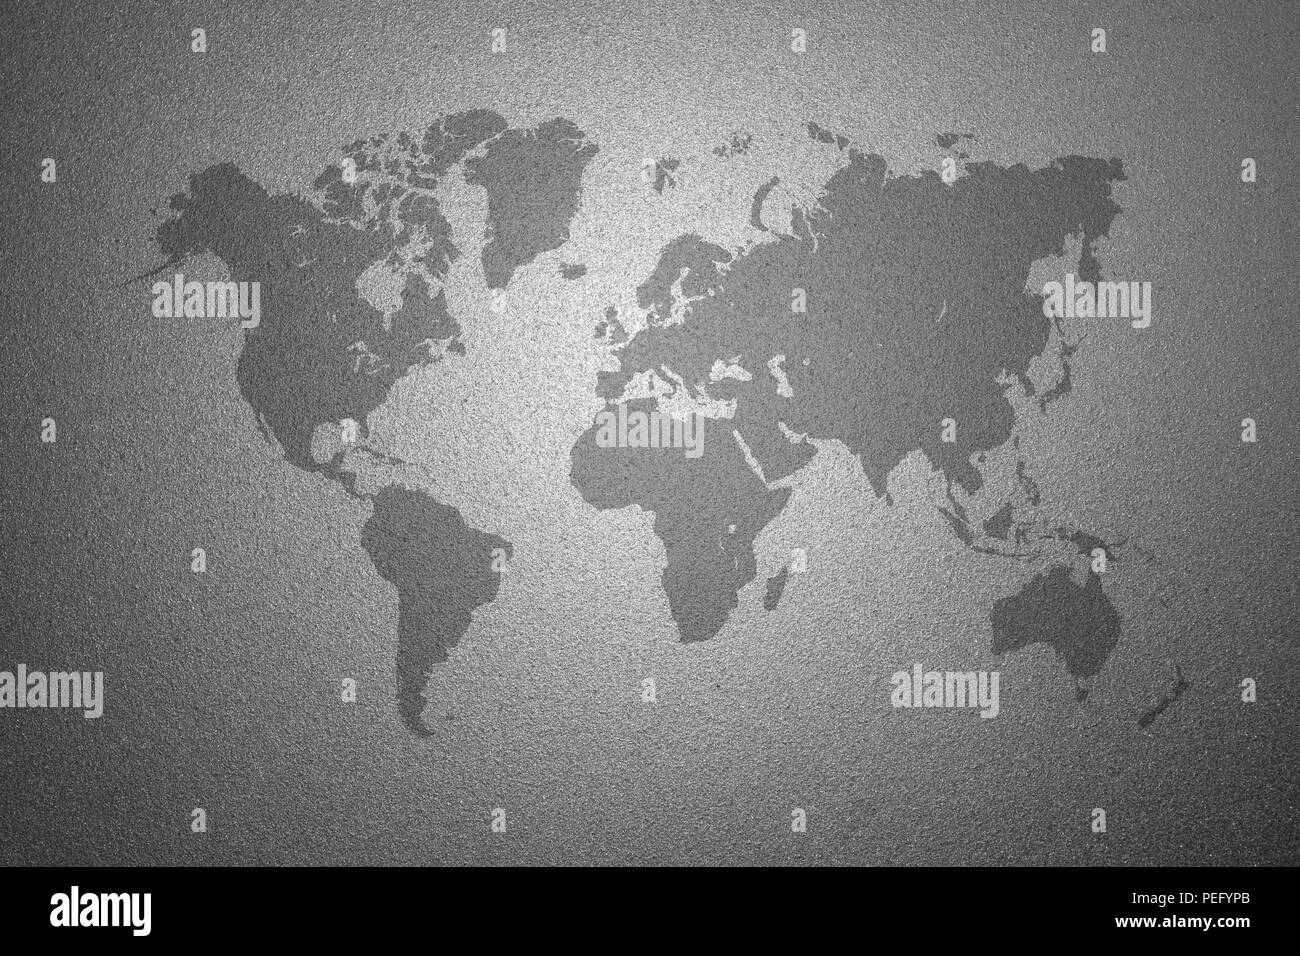 World map on gray frosted glass texture as background interior world map on gray frosted glass texture as background interior decoration design for windows or doors gumiabroncs Gallery